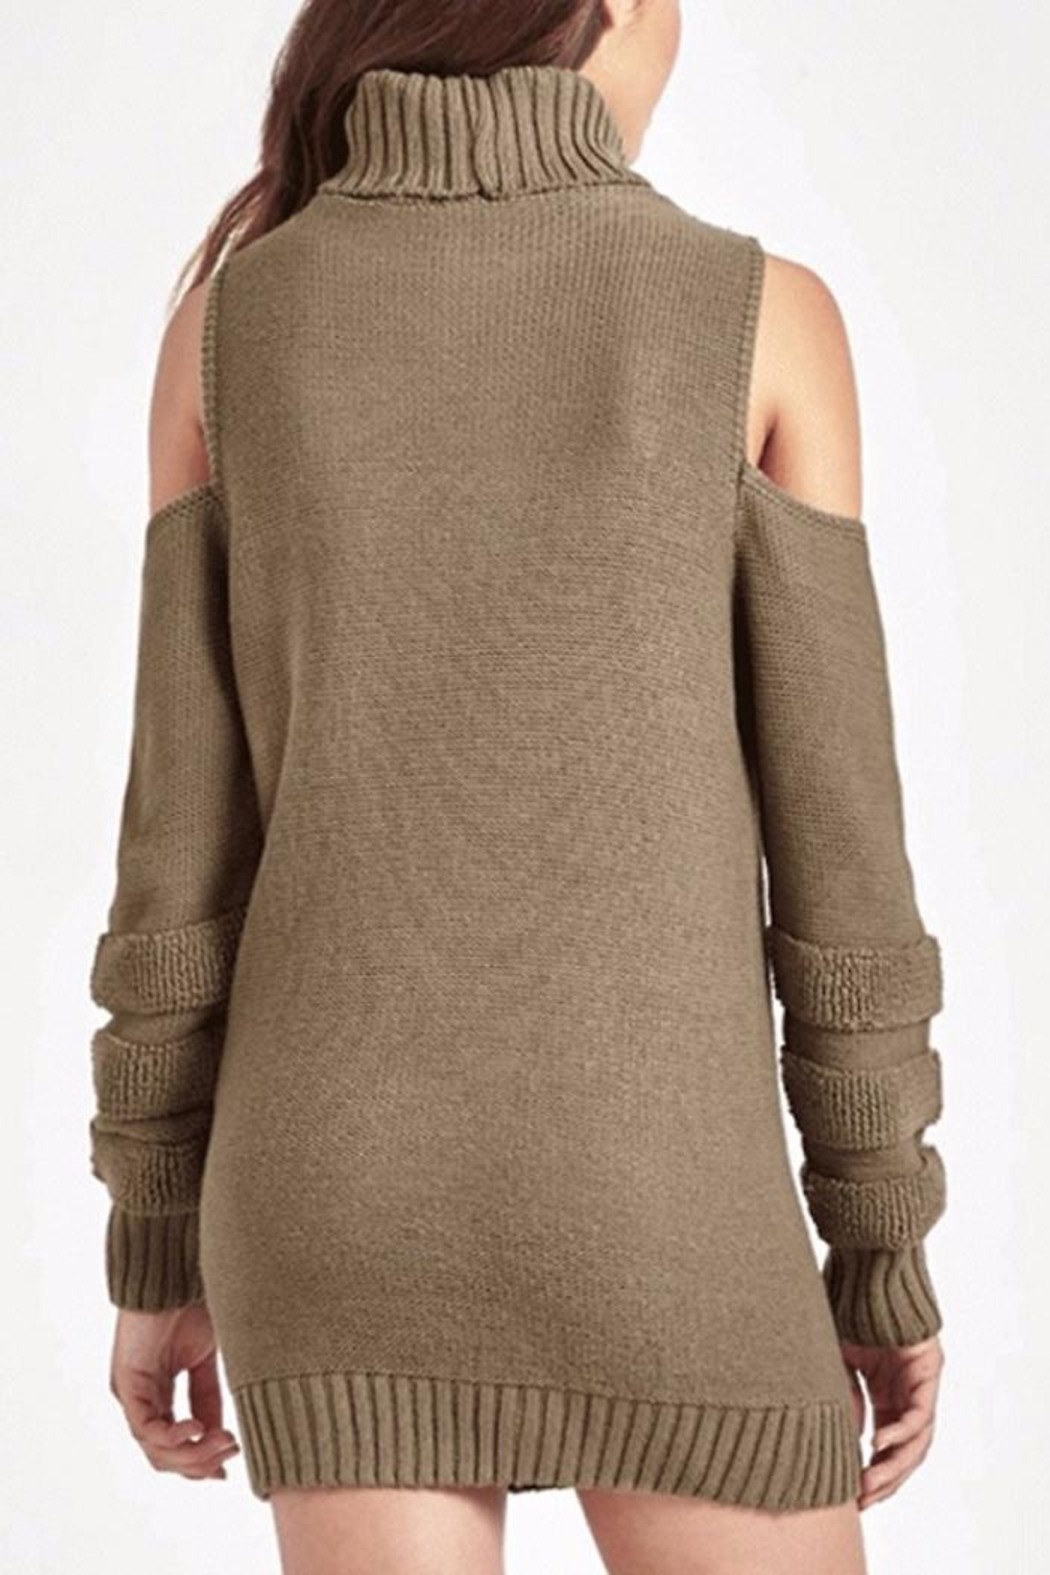 People Outfitter Ailis Tunic Sweater - Front Full Image